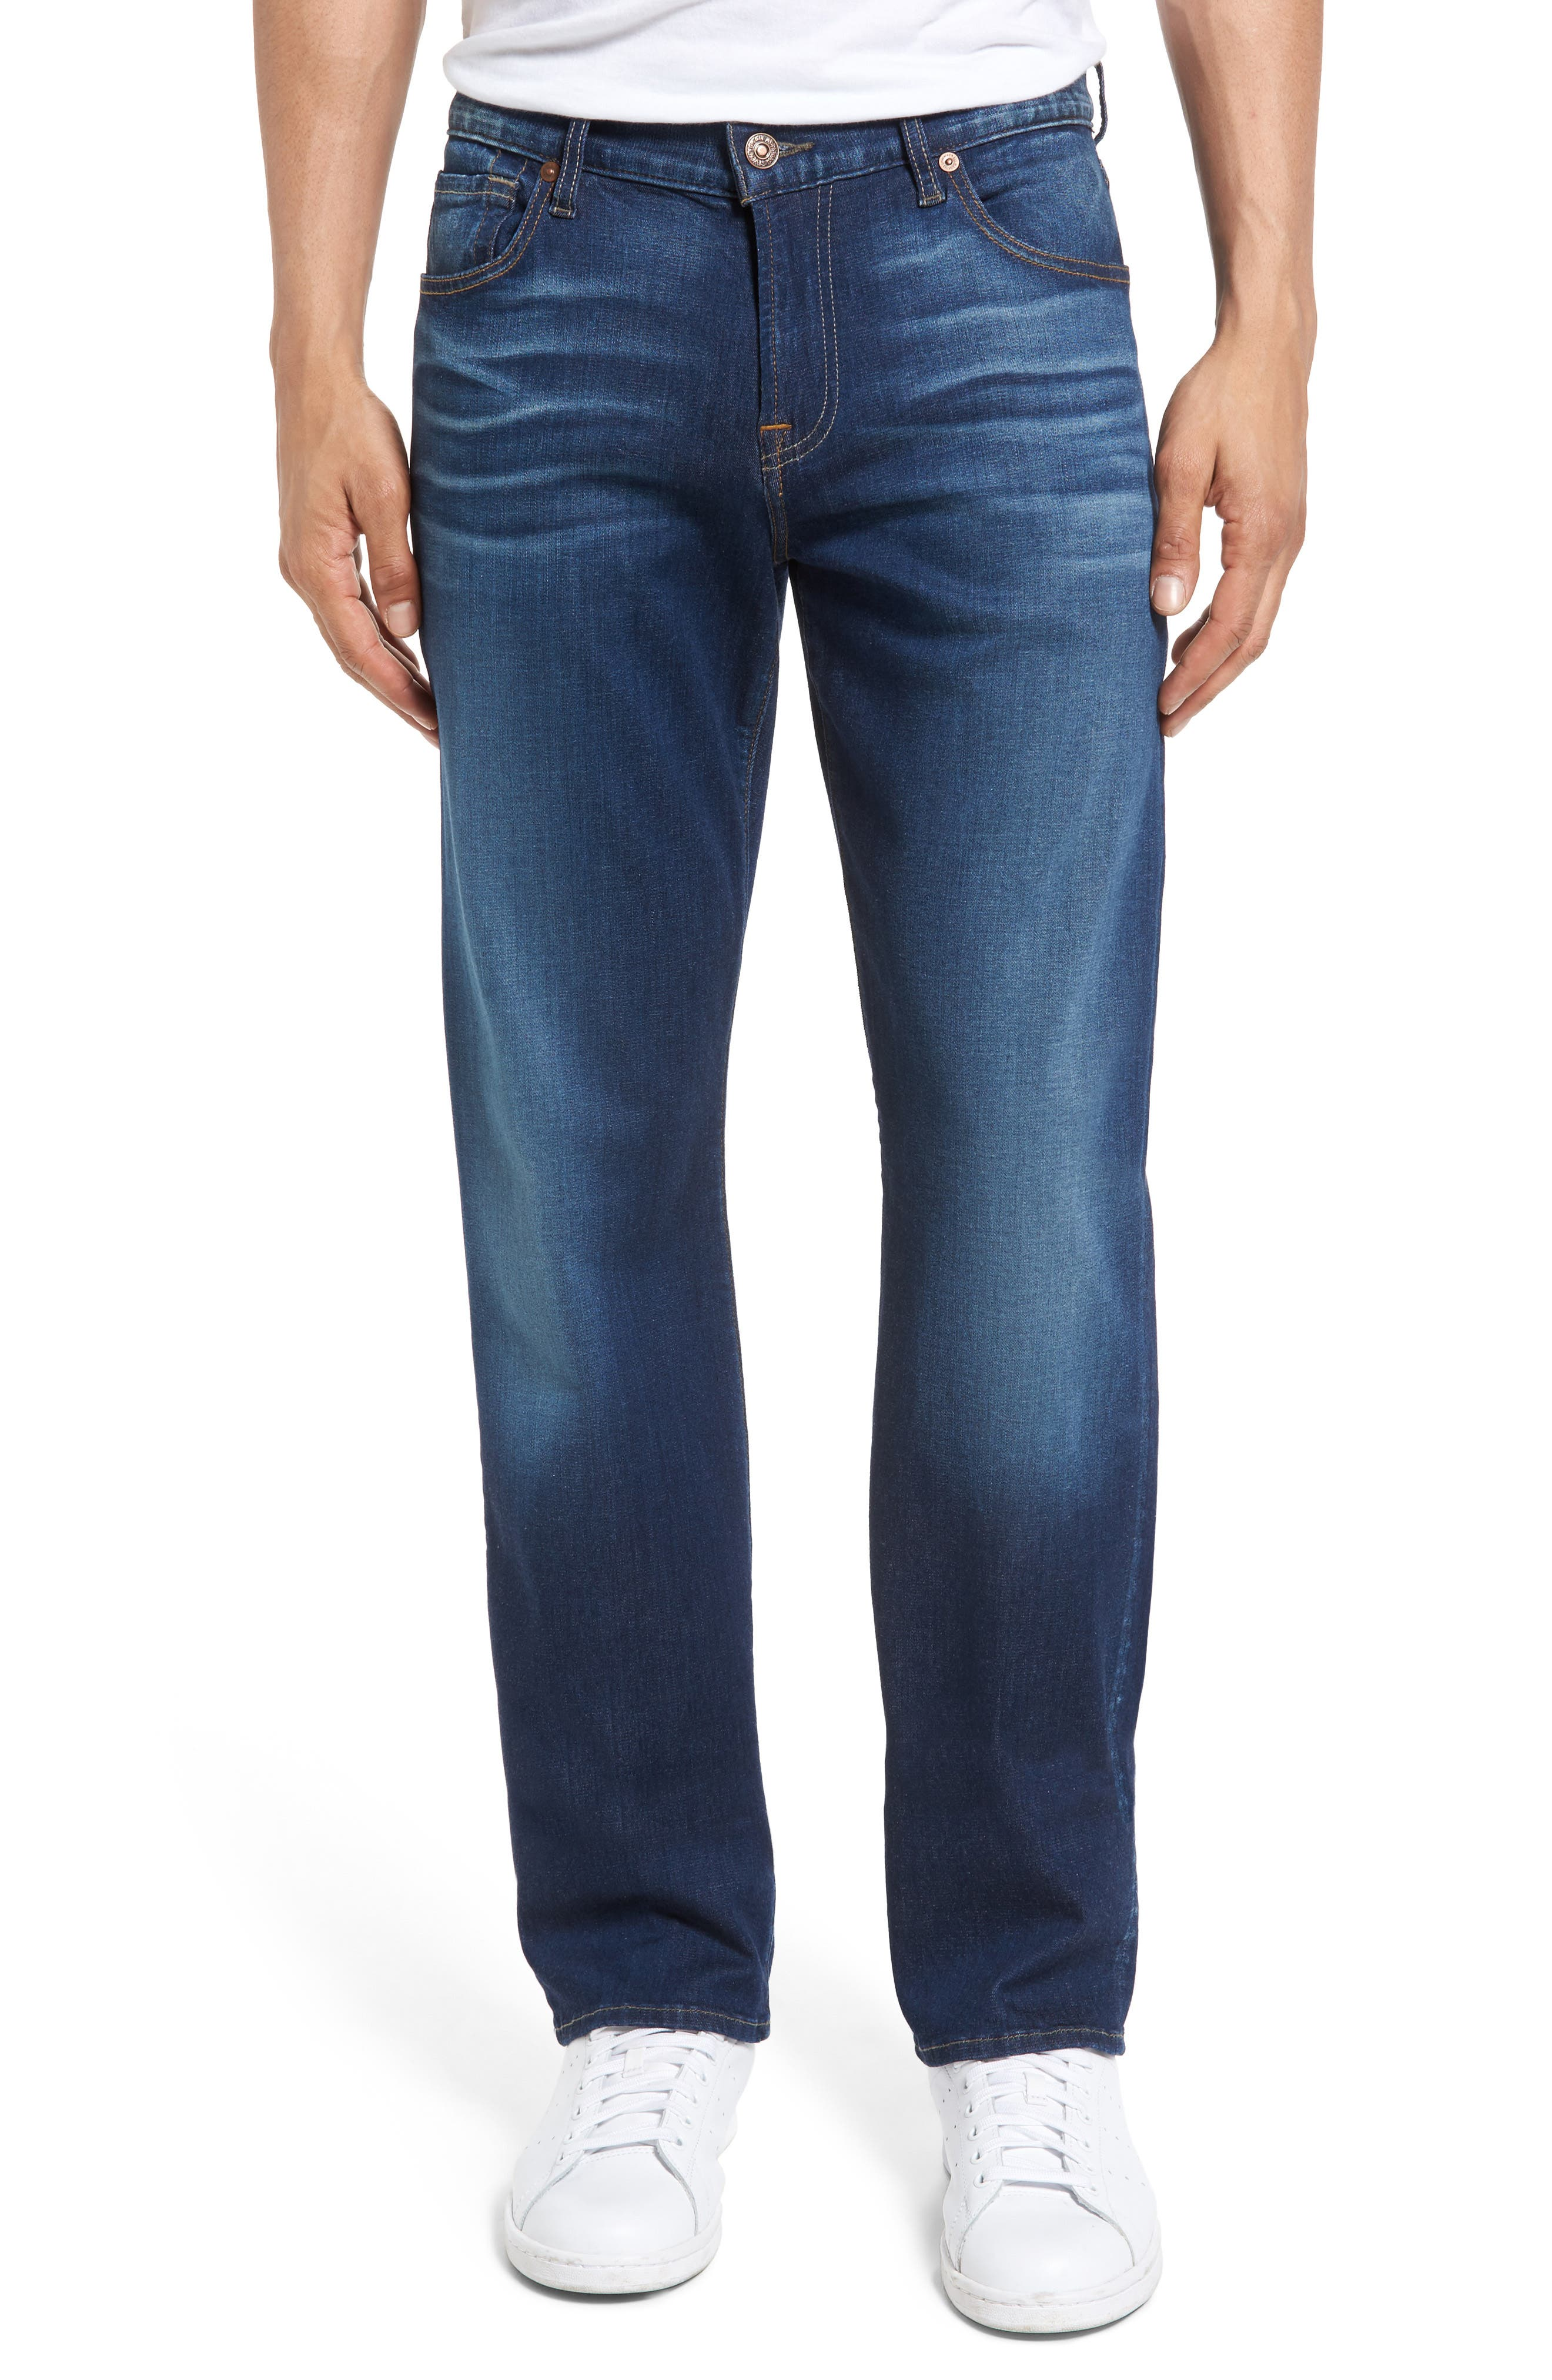 Main Image - 7 For All Mankind® Slimmy Slim Fit Jeans (MOMT-Momentum)